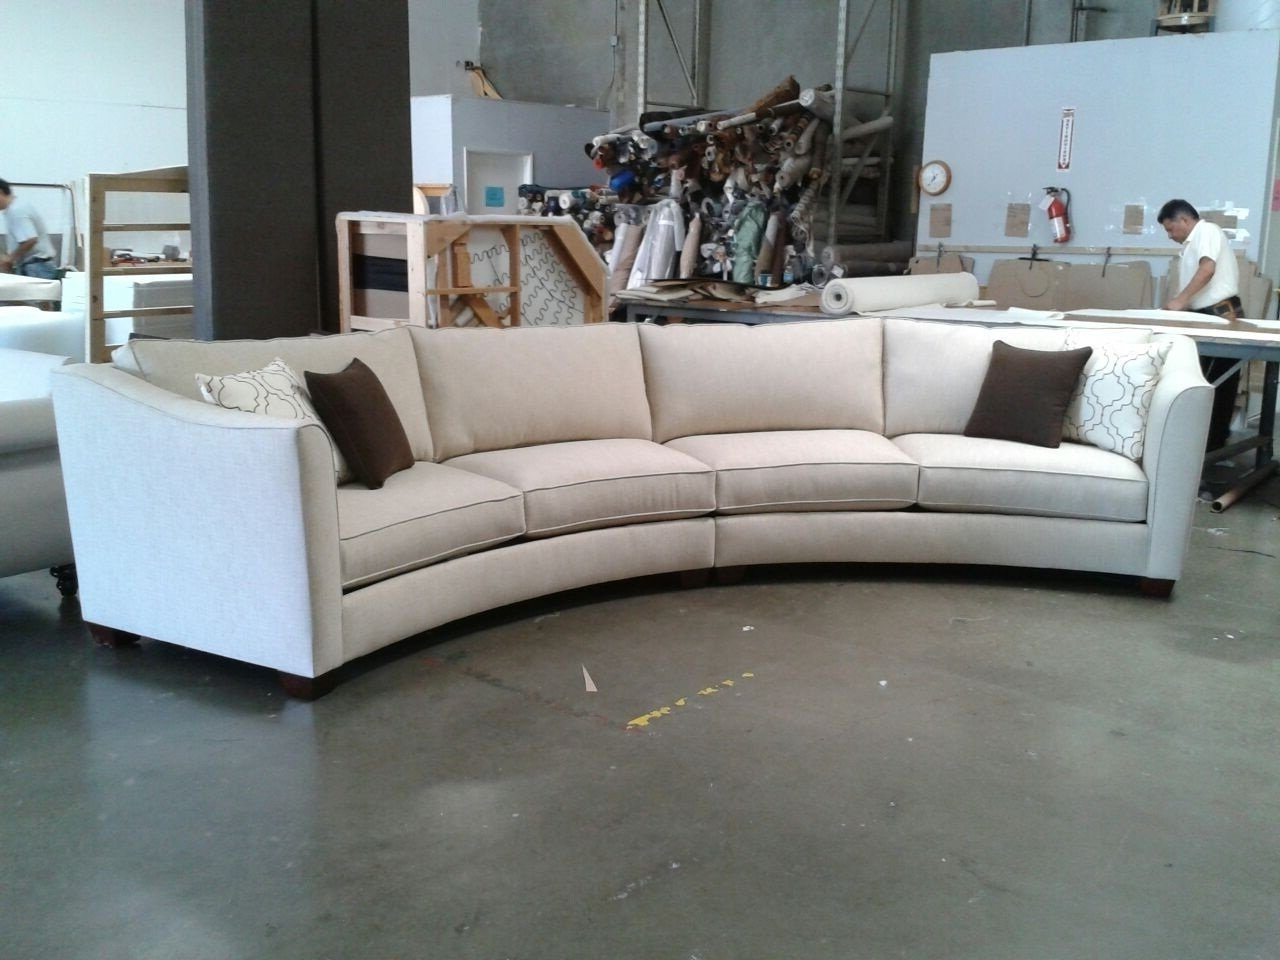 Newest Curved Sectional Sofa Design — Cabinets, Beds, Sofas And Throughout Rounded Sofas (View 6 of 15)